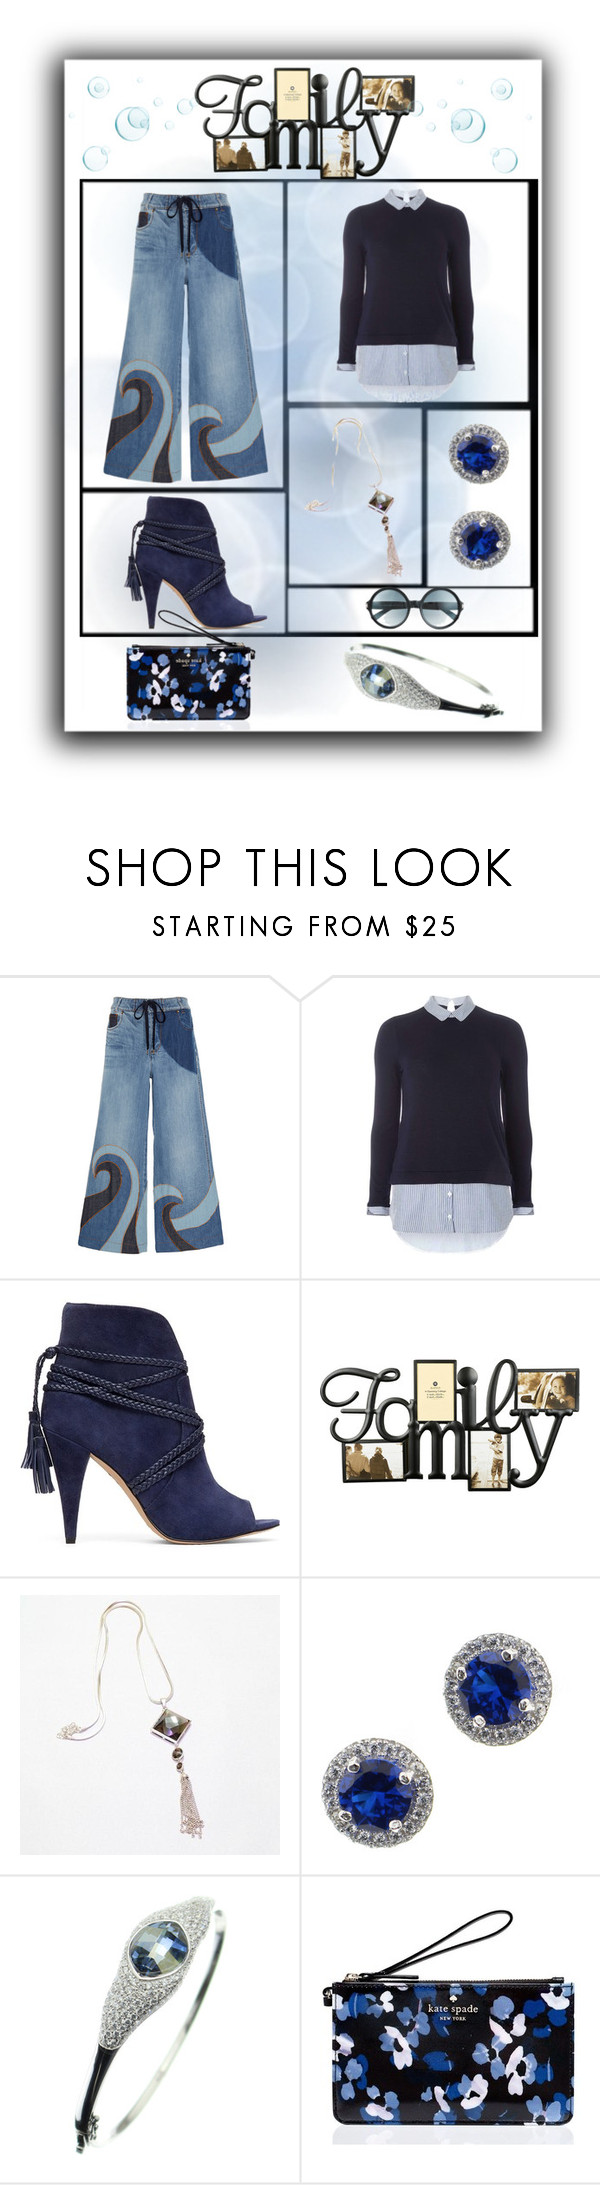 """""""Style Me #Denim"""" by freida-adams ❤ liked on Polyvore featuring RED Valentino, Dorothy Perkins, Vince Camuto, Kate Spade, Tom Ford, denim and bellastreasure"""